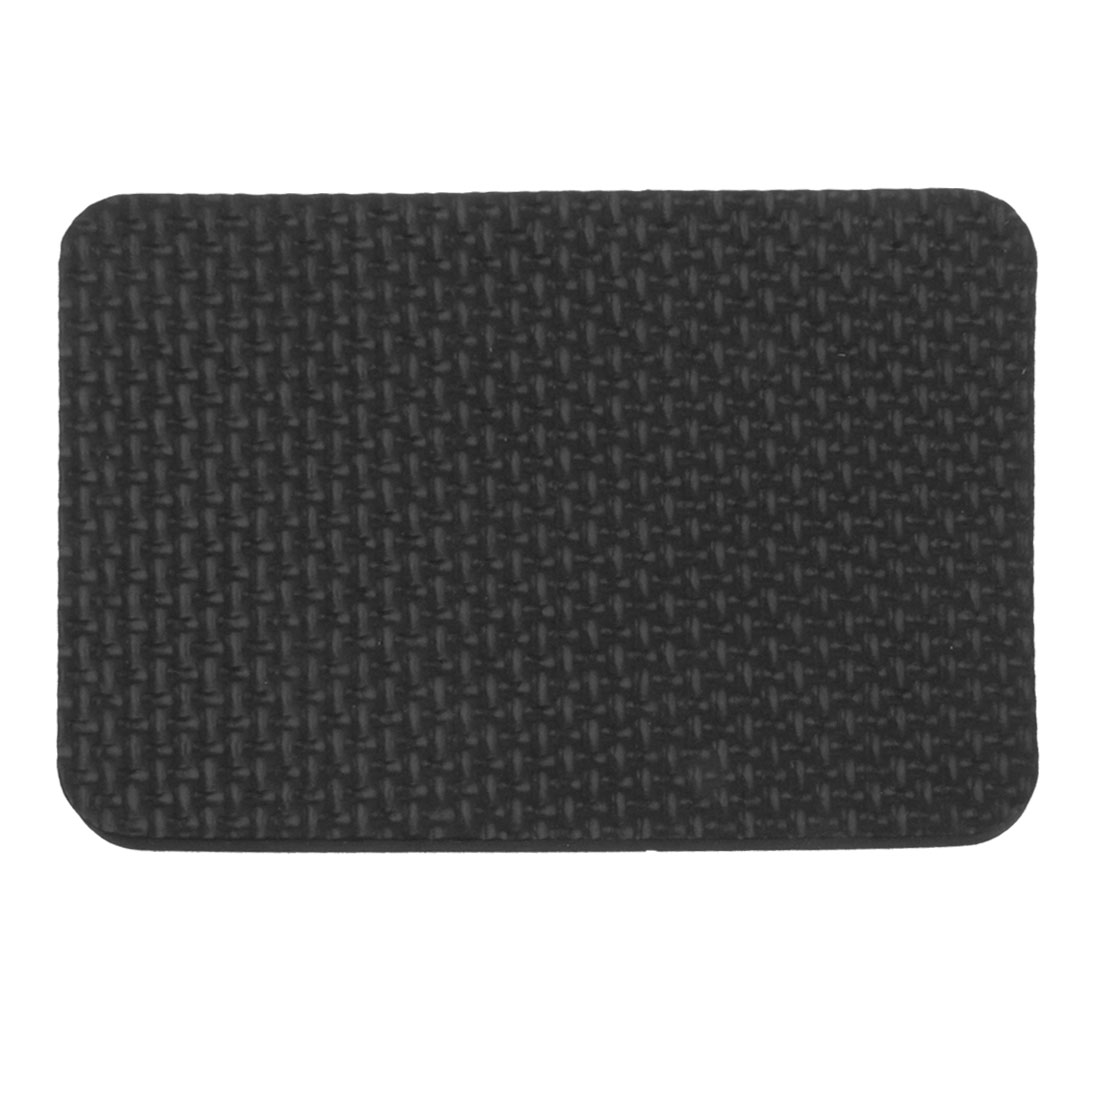 10.5cm x 7.5cm Rectangle Furniture Tables Chairs Protection Mat Pad Black